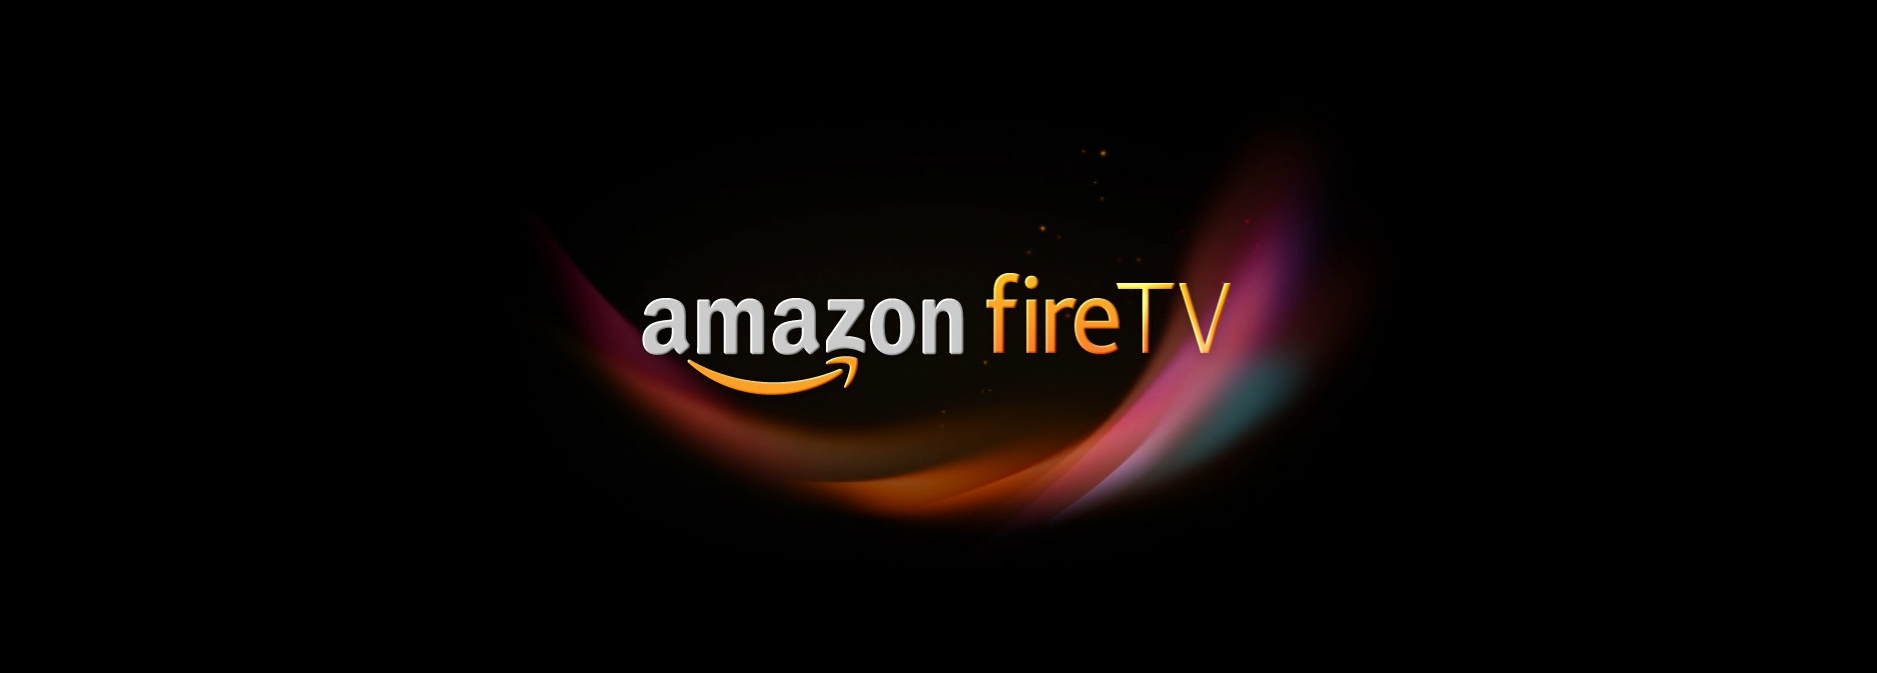 Logo beim Start des Amazon Fire TV